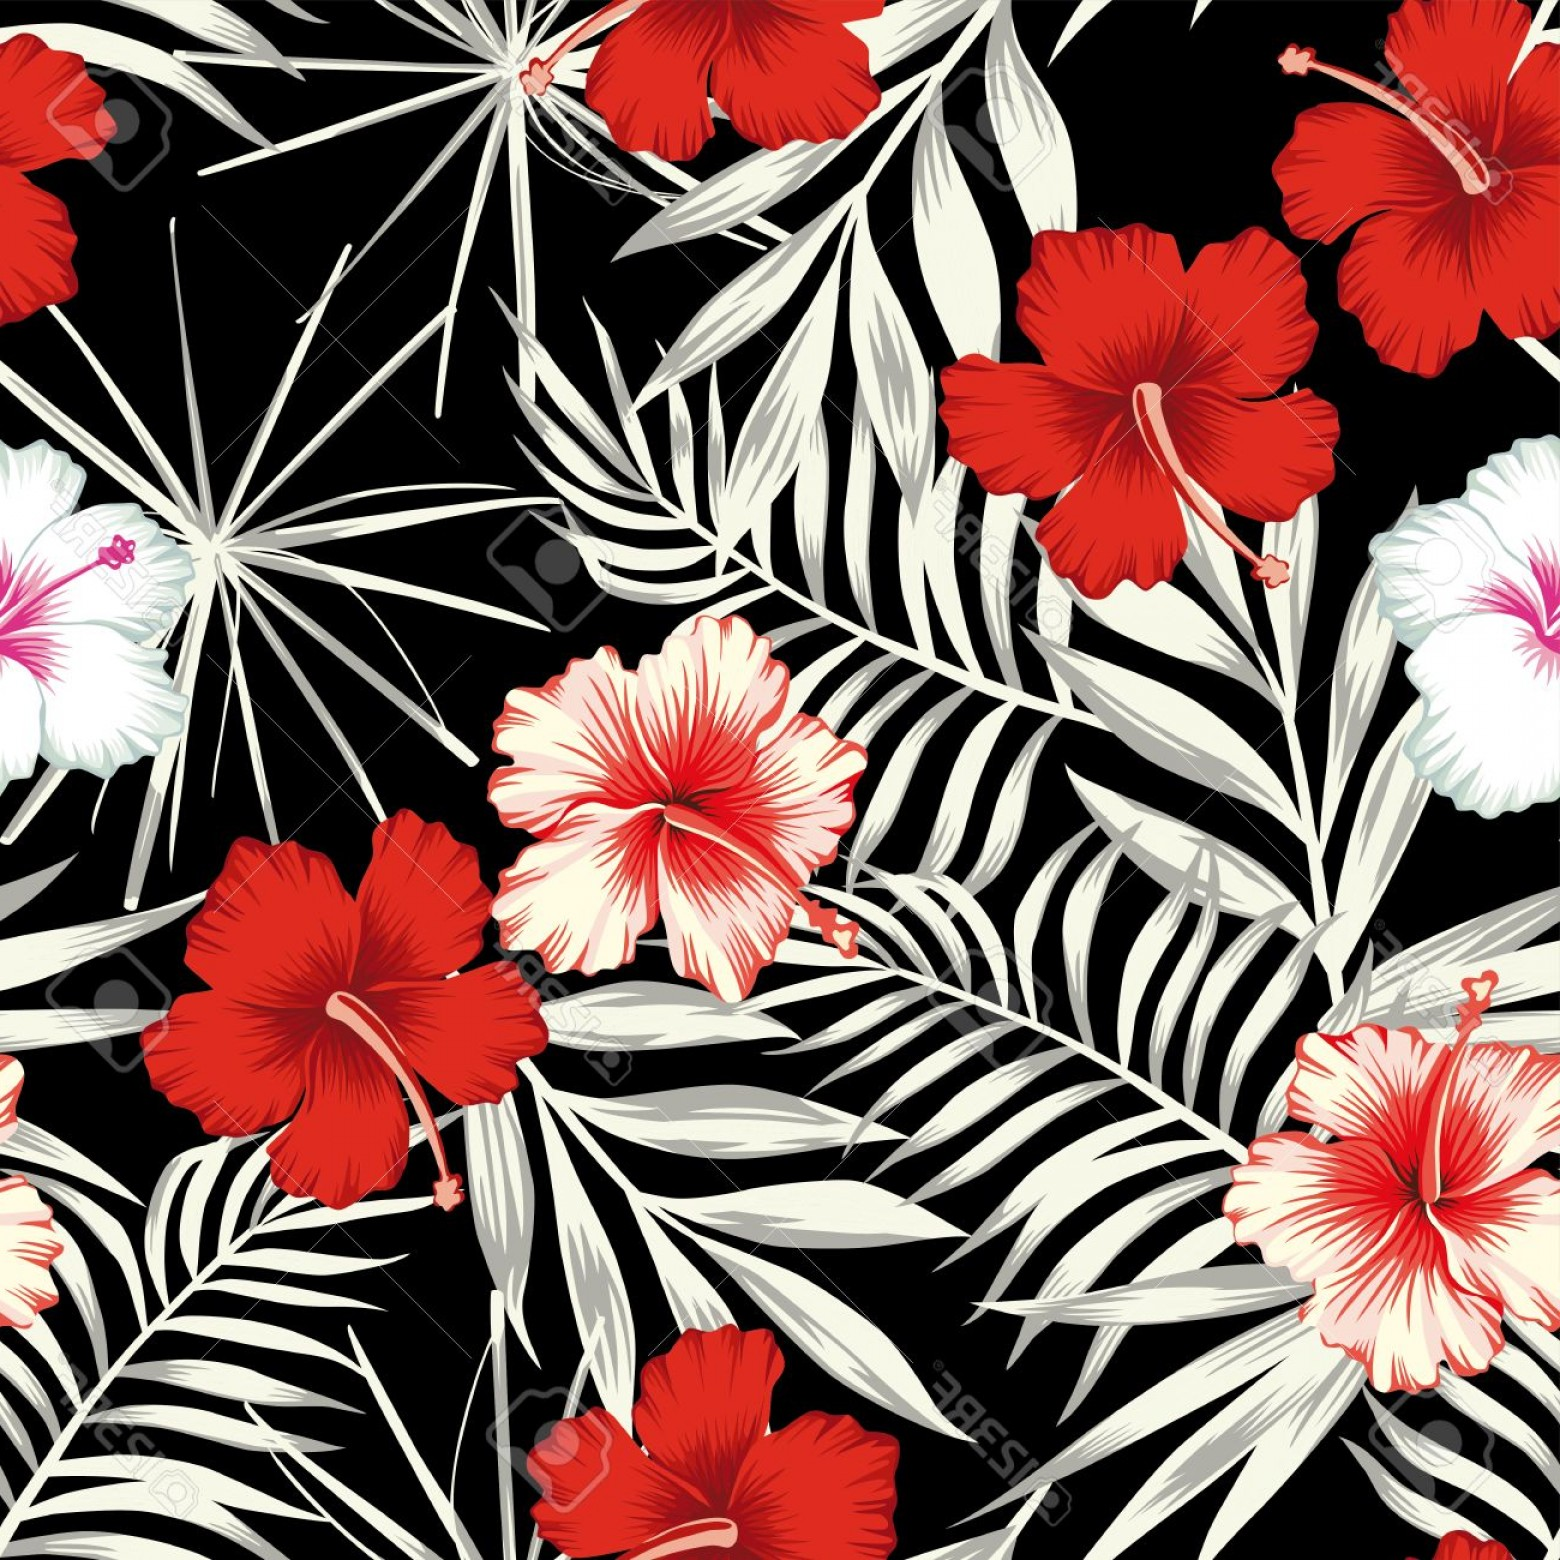 Hawaiian Flower Seamless Vector Pattern: Stylish Photostock Vector Red White Hibiscus Flowers On A Black And White Background Of Leaves Seamless Vector Beach Wallpaper